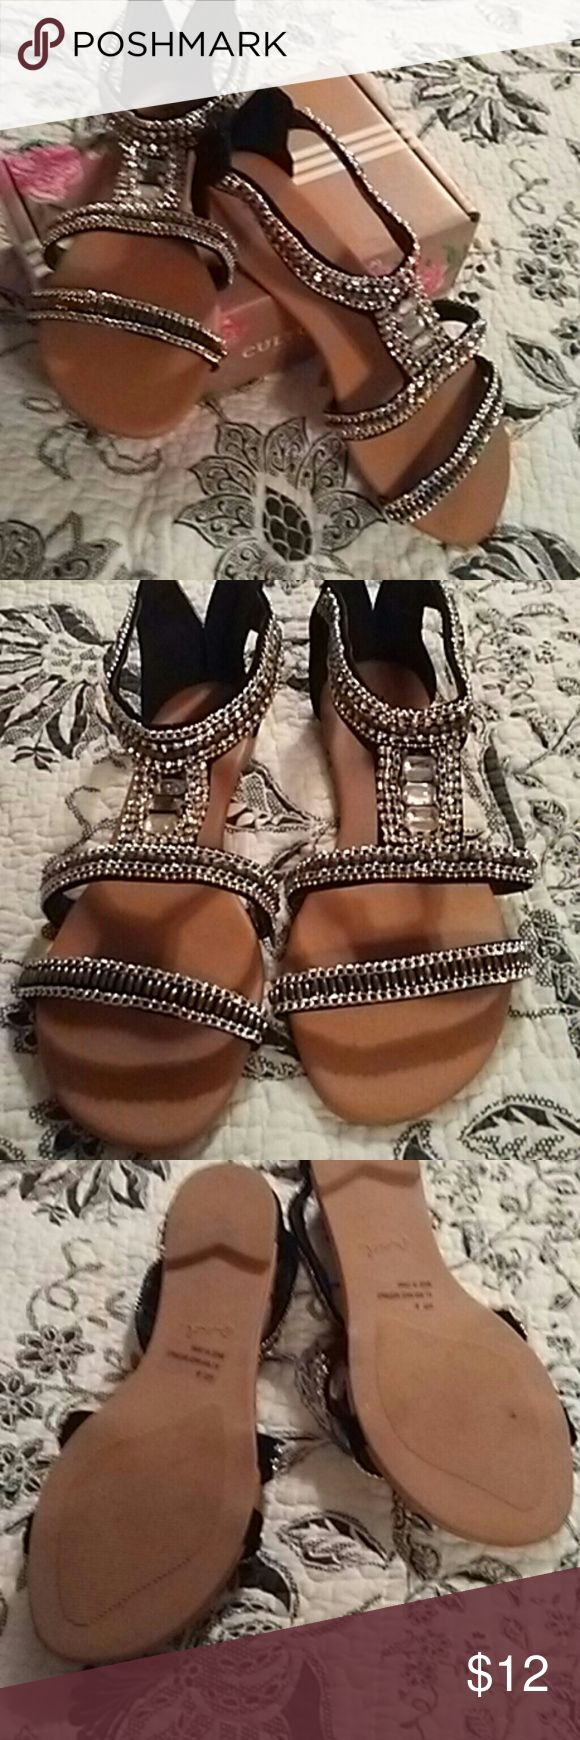 Sandals New never worn black and bling detail zips in back qupid  Shoes Flats & Loafers